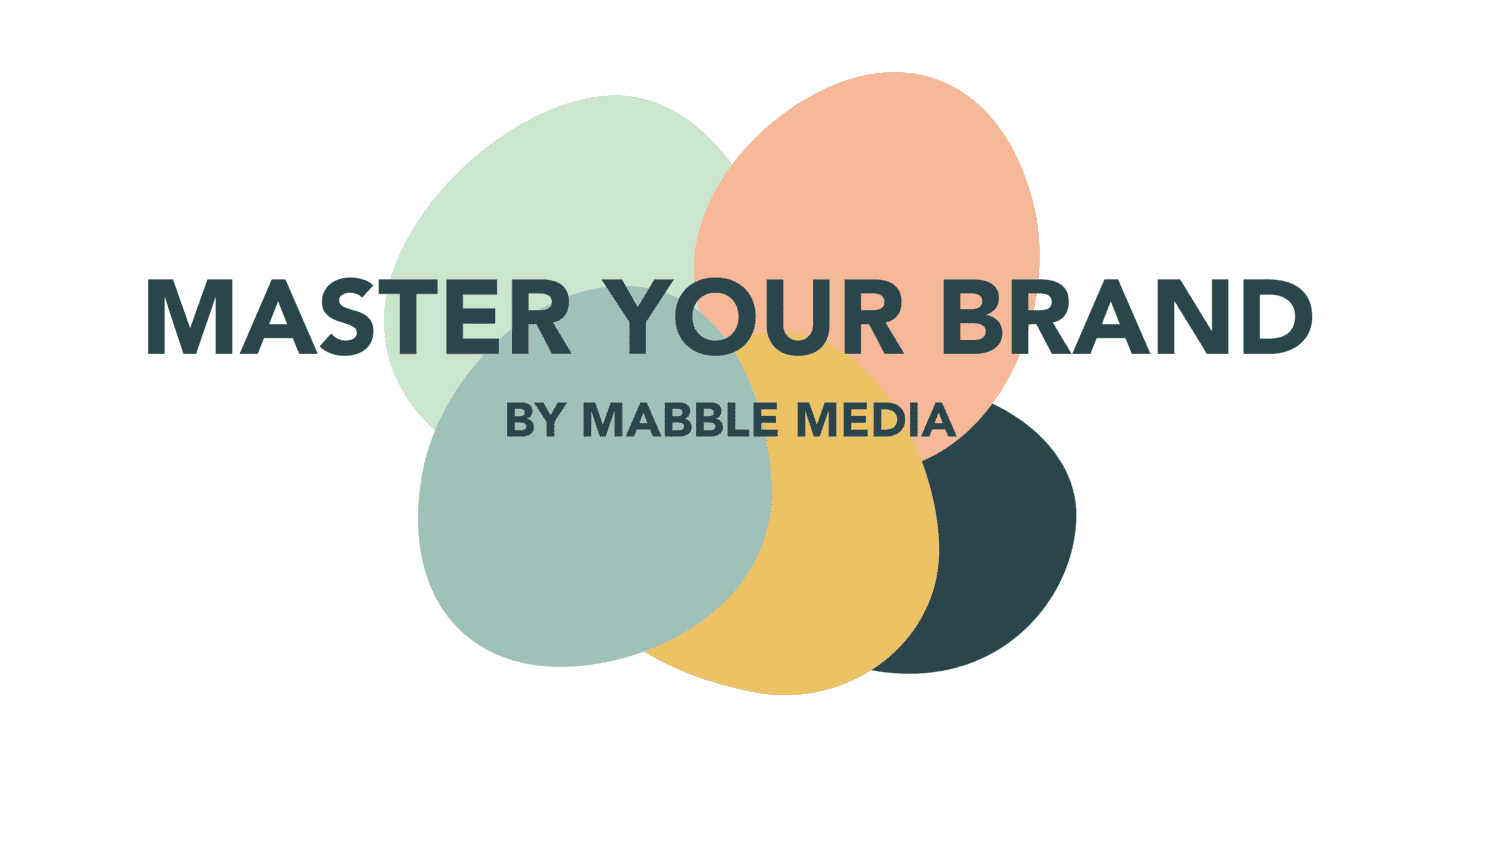 Mabble Media - Creative Agency | SEVEN TIPS FOR BRAND SEVENTH HEAVEN*